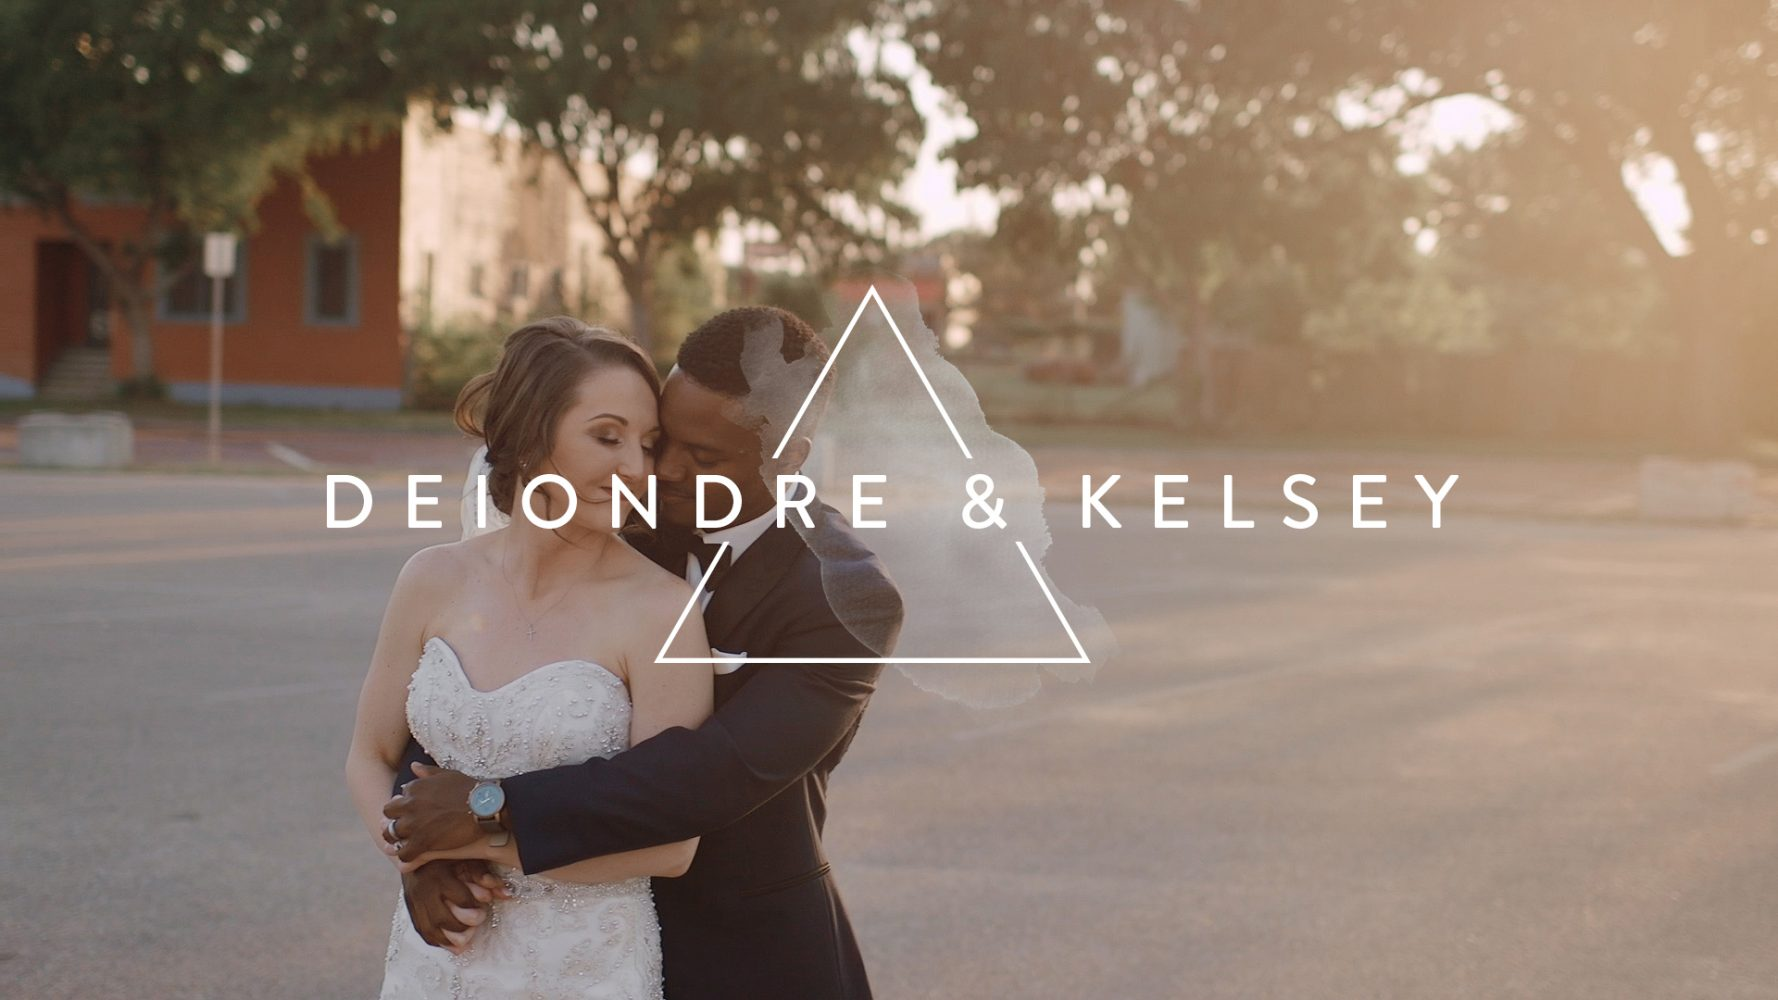 Deiondre + Kelsey | Wichita, Kansas | The Hudson